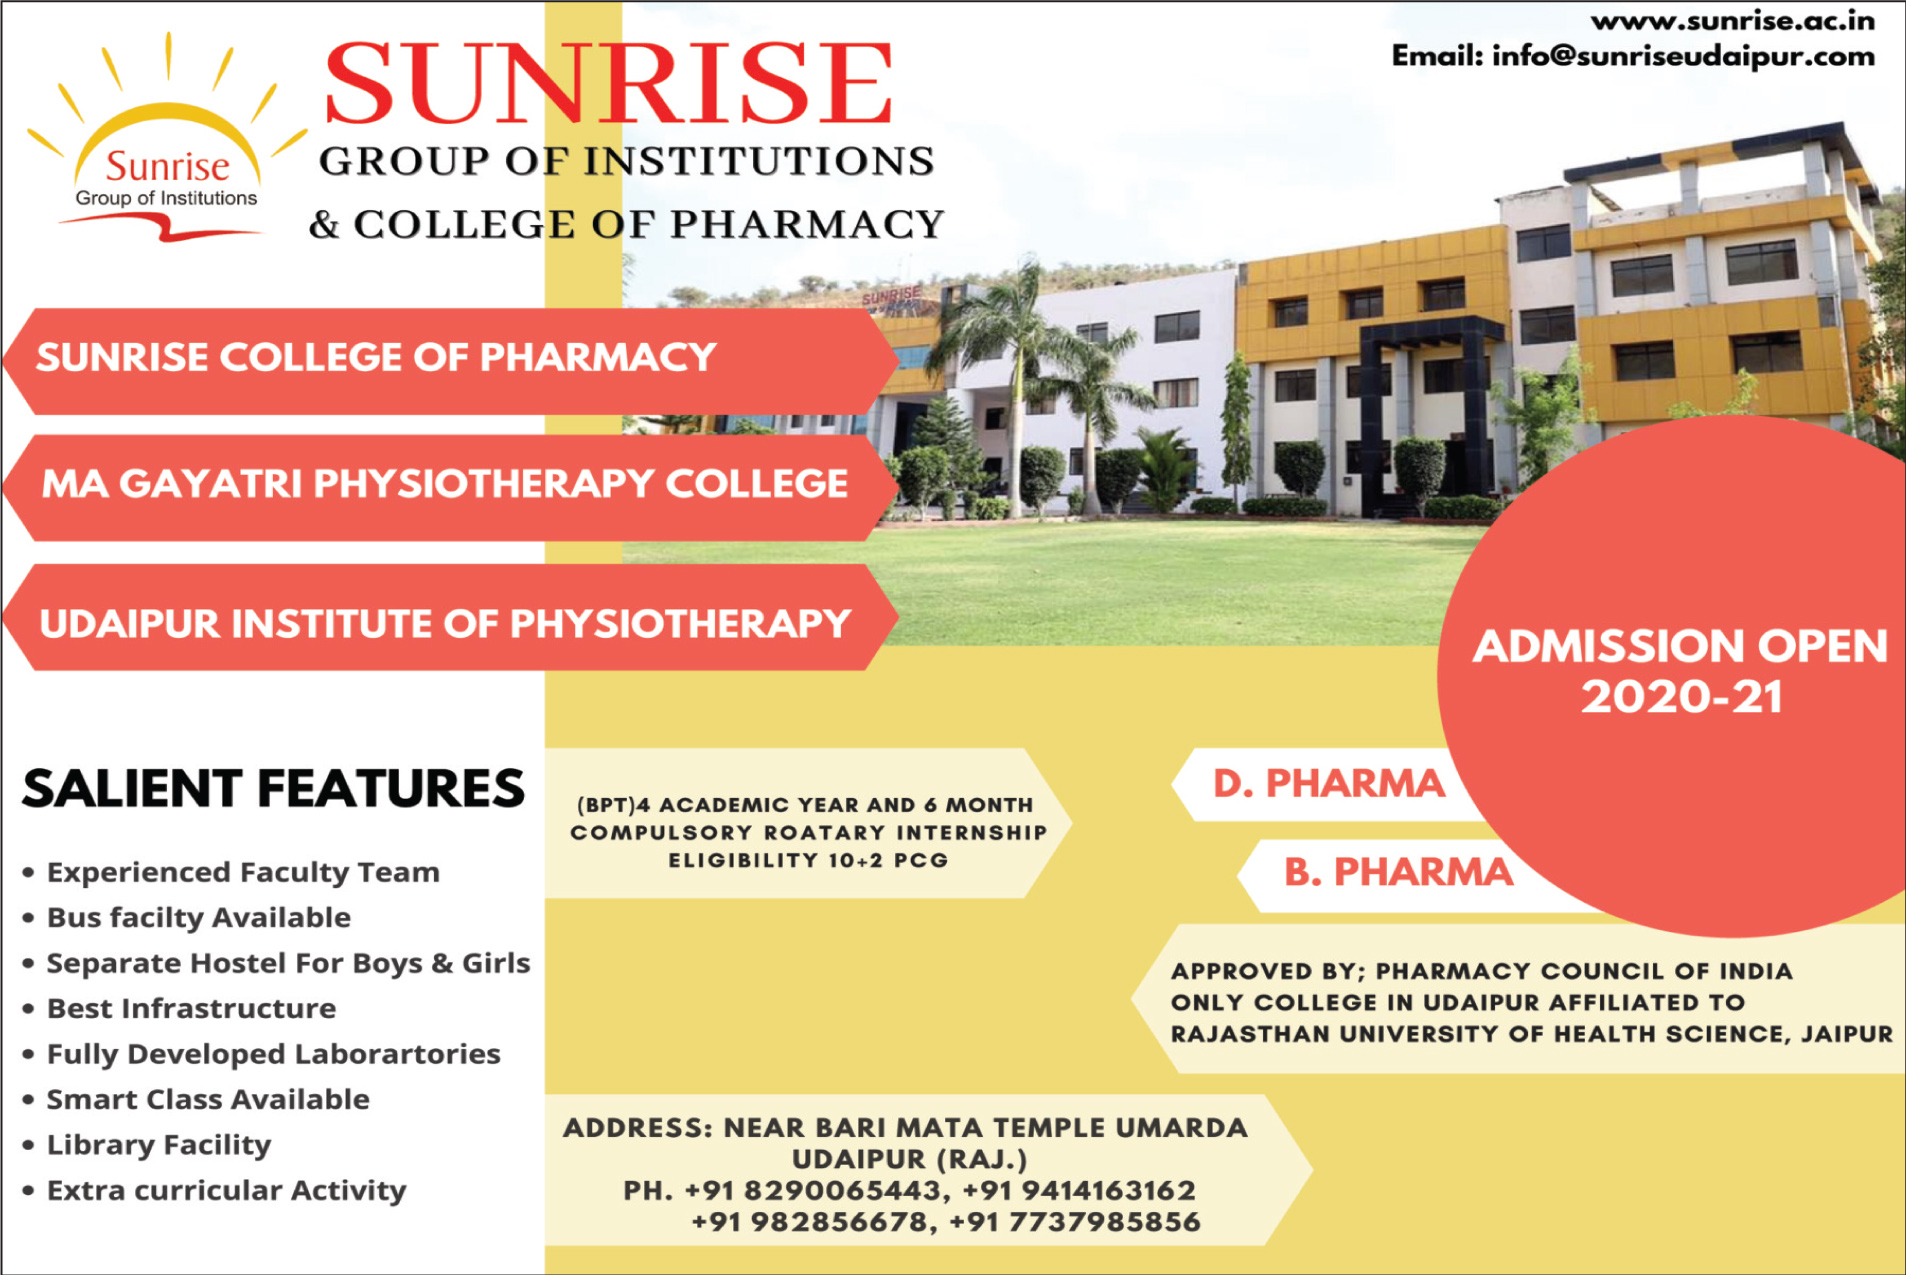 Advertisement Sunrise Group of Institutions & College of Pharmacy